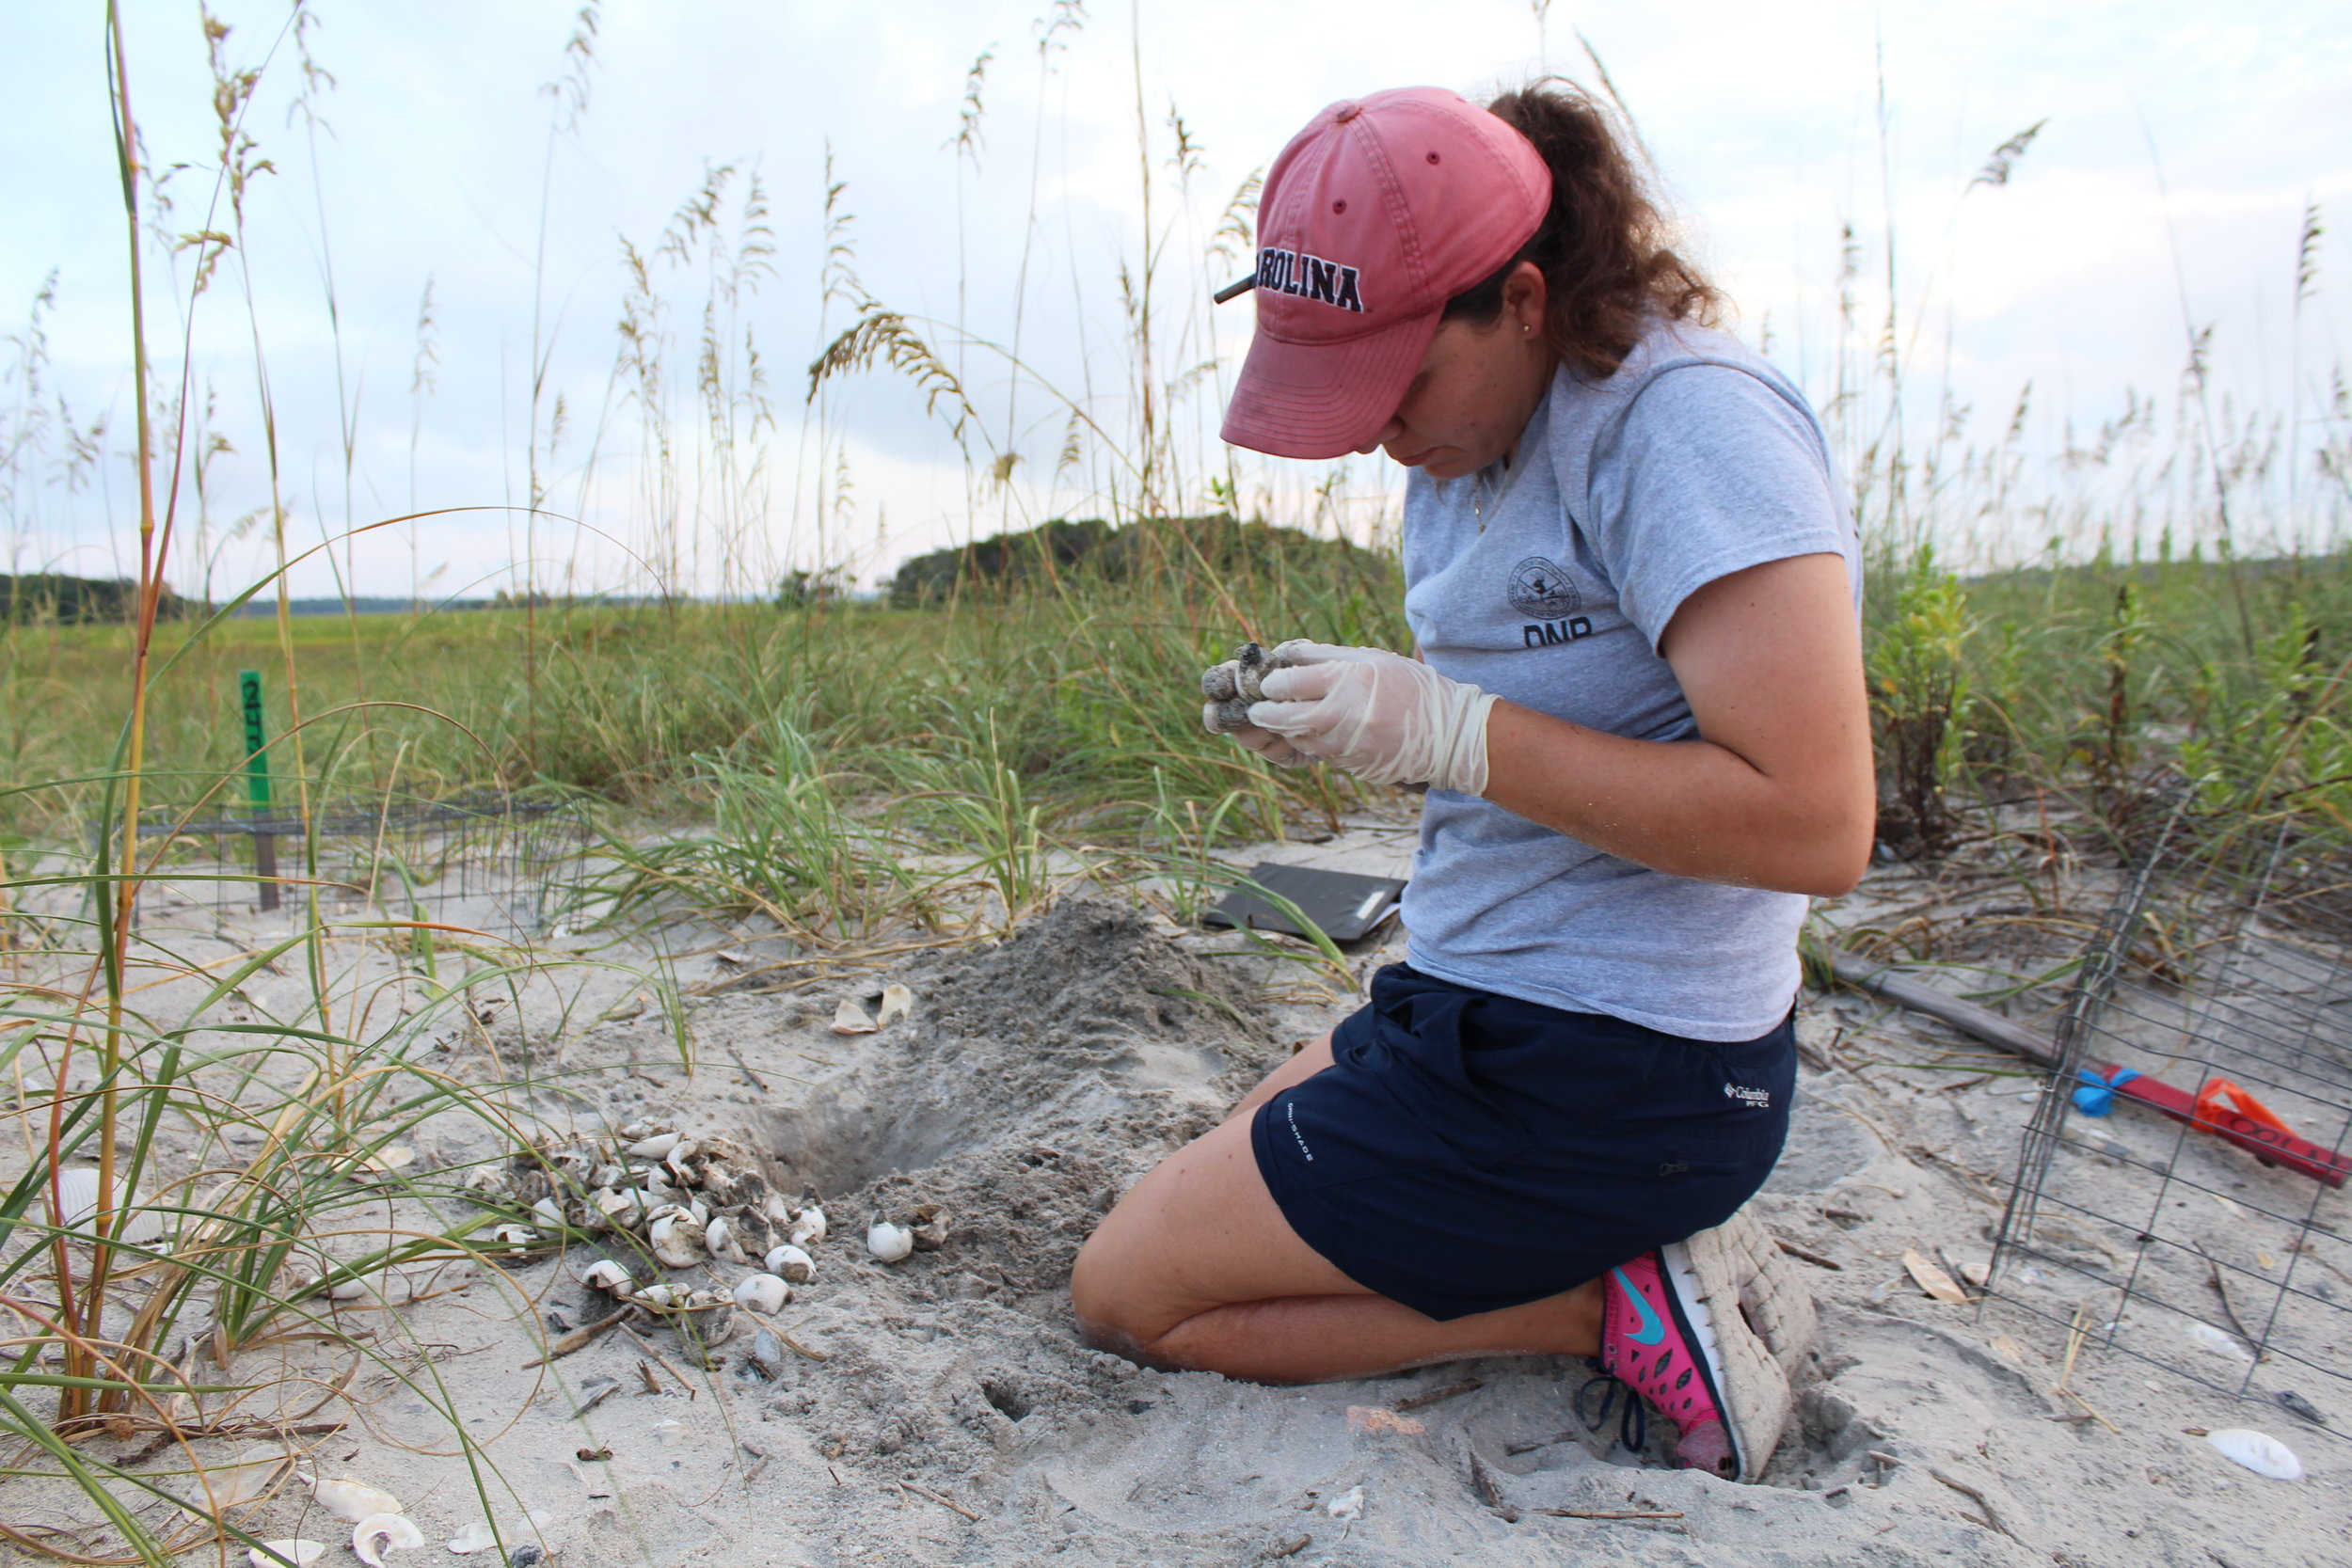 SCDNR sea turtle intern Ann Clark conducts an inventory of a hatched loggerhead nest on Botany Bay Plantation's beach in 2016. (Photo: E. Weeks/SCDNR)